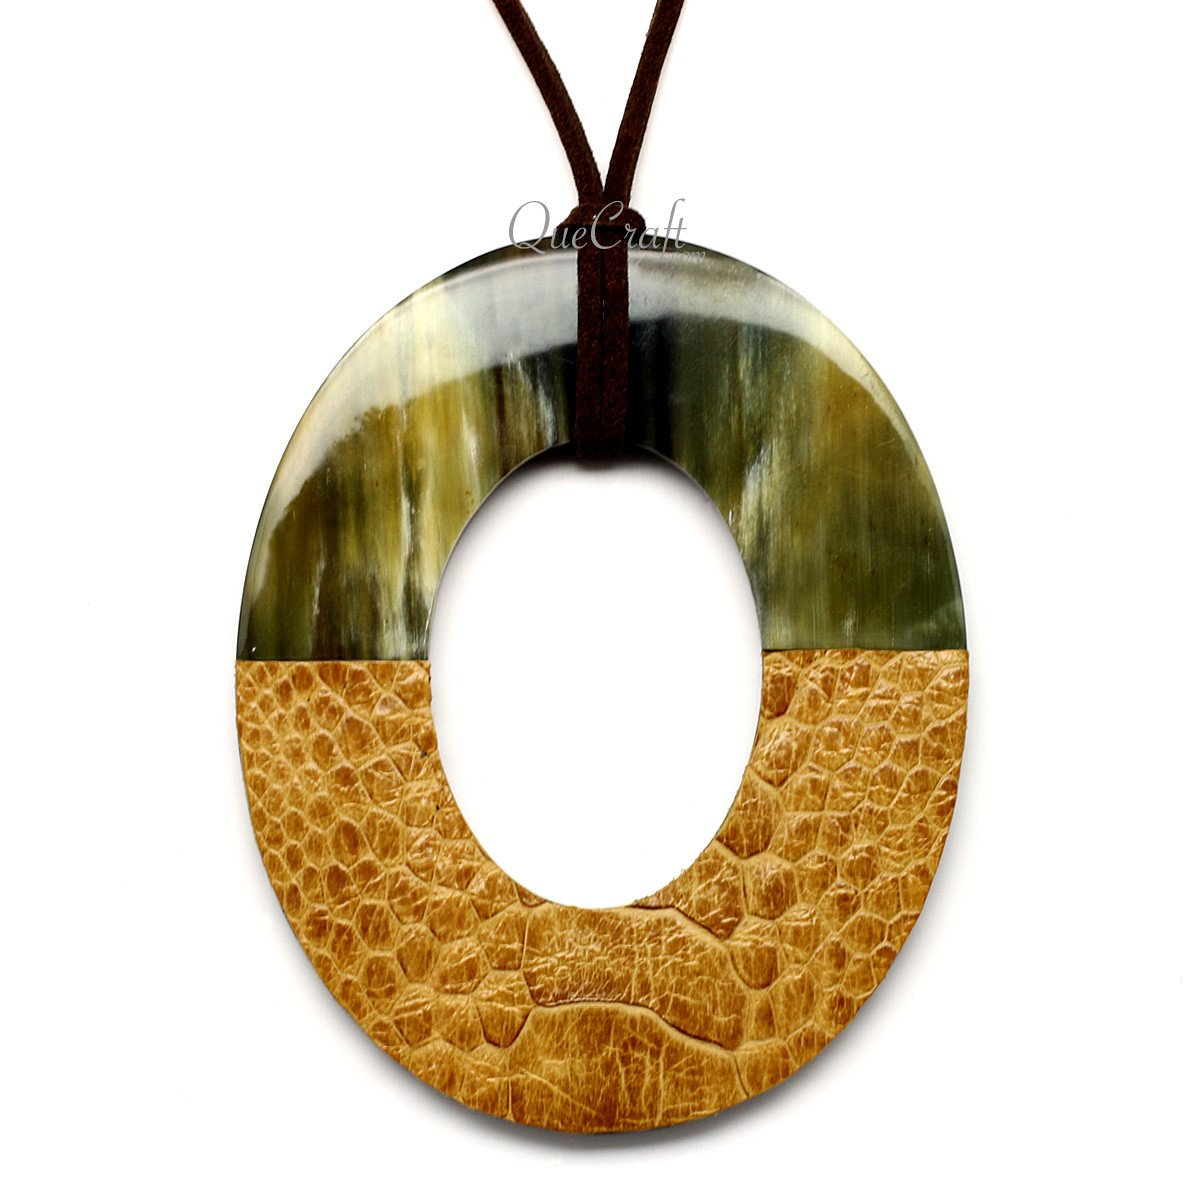 Horn & Leather Pendant #12503 - HORN.JEWELRY